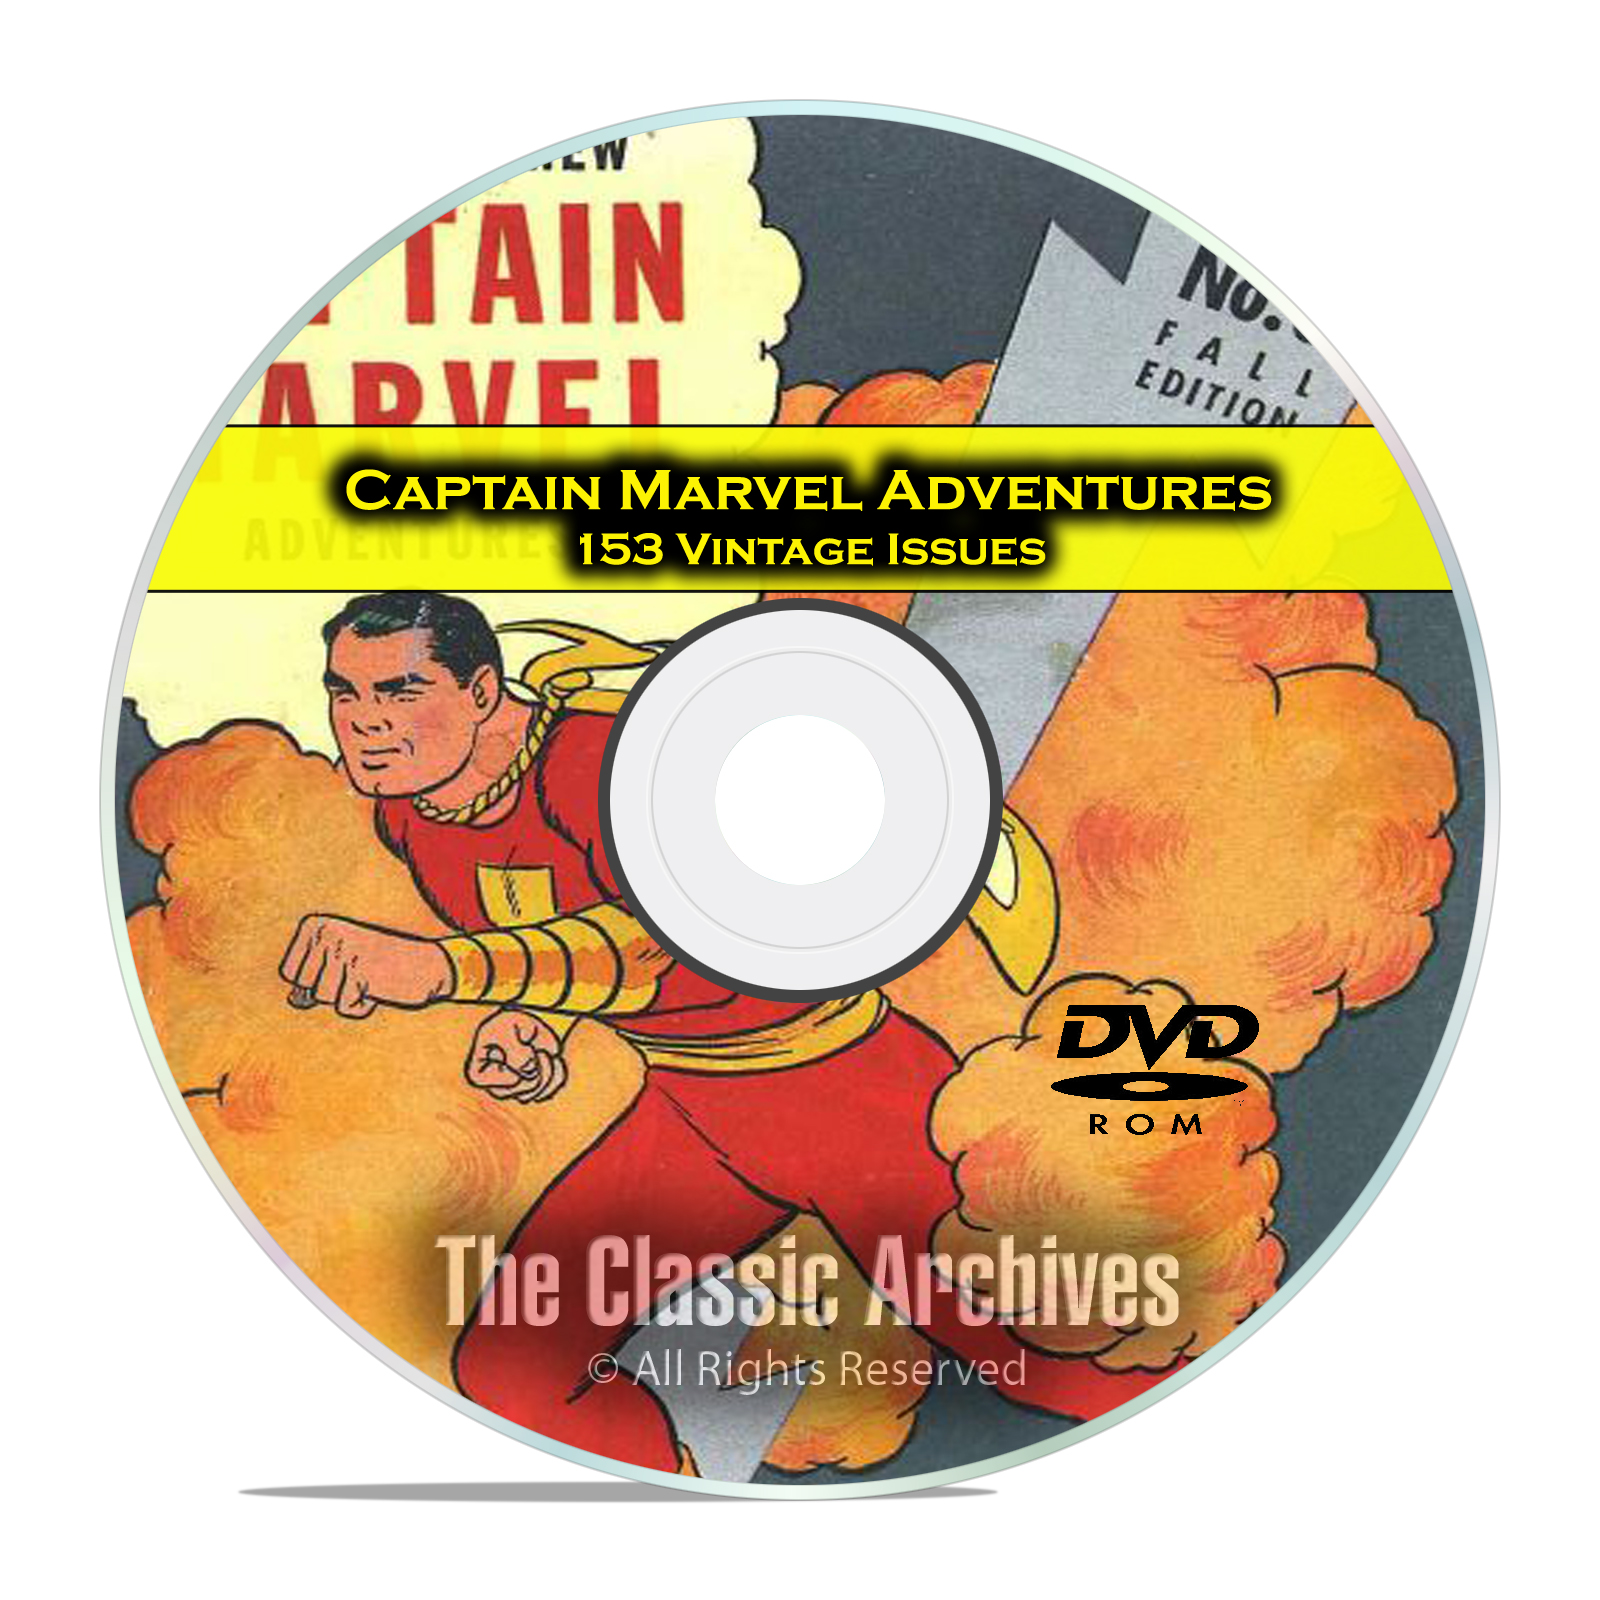 Captain Marvel Adventures, 153 Issues, Golden Age Comics PDF DVD